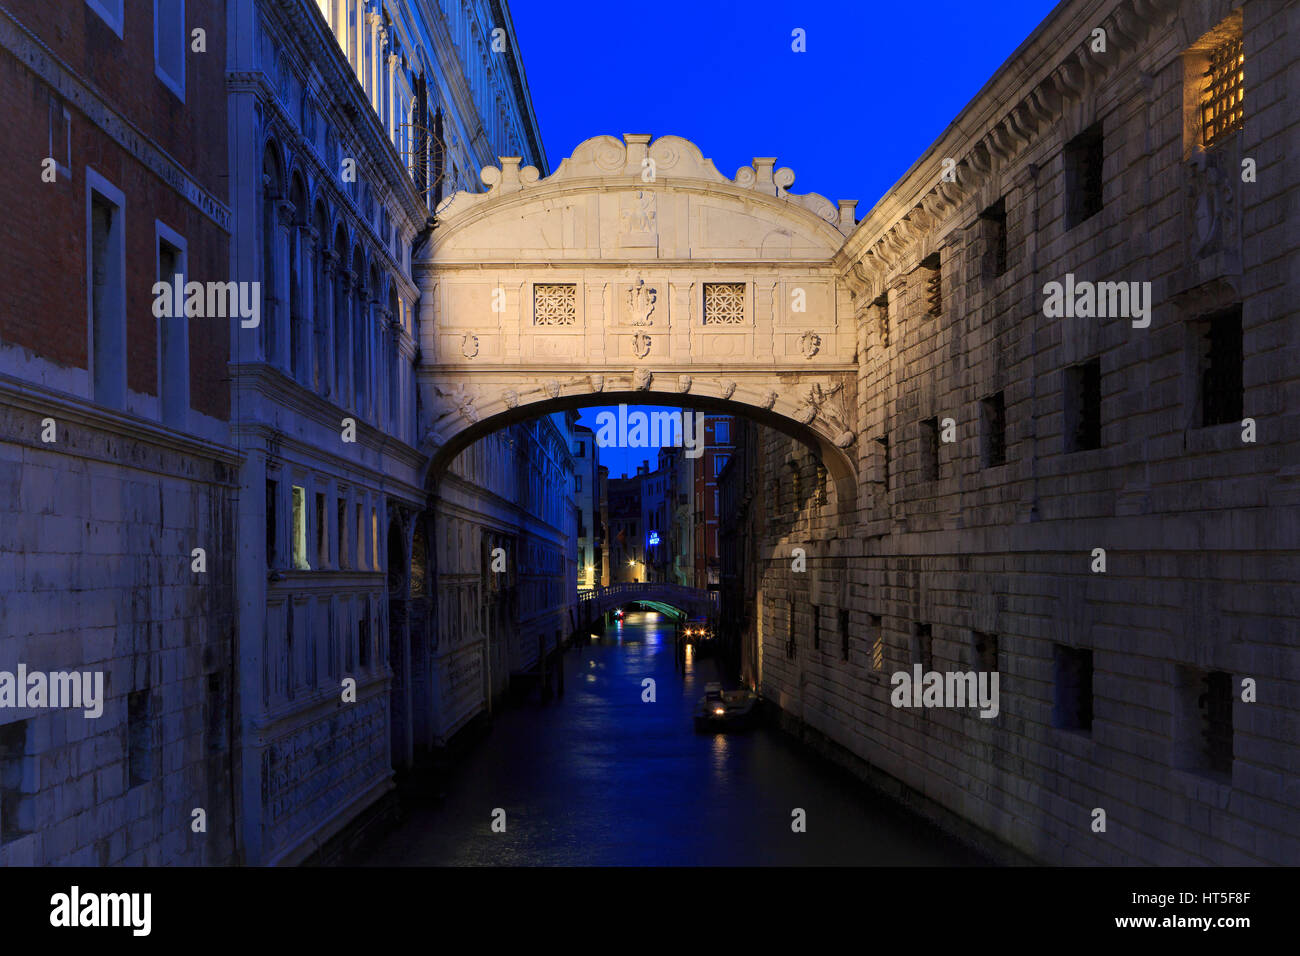 The Bridge of Sighs (1602) at dawn in Venice, Italy - Stock Image